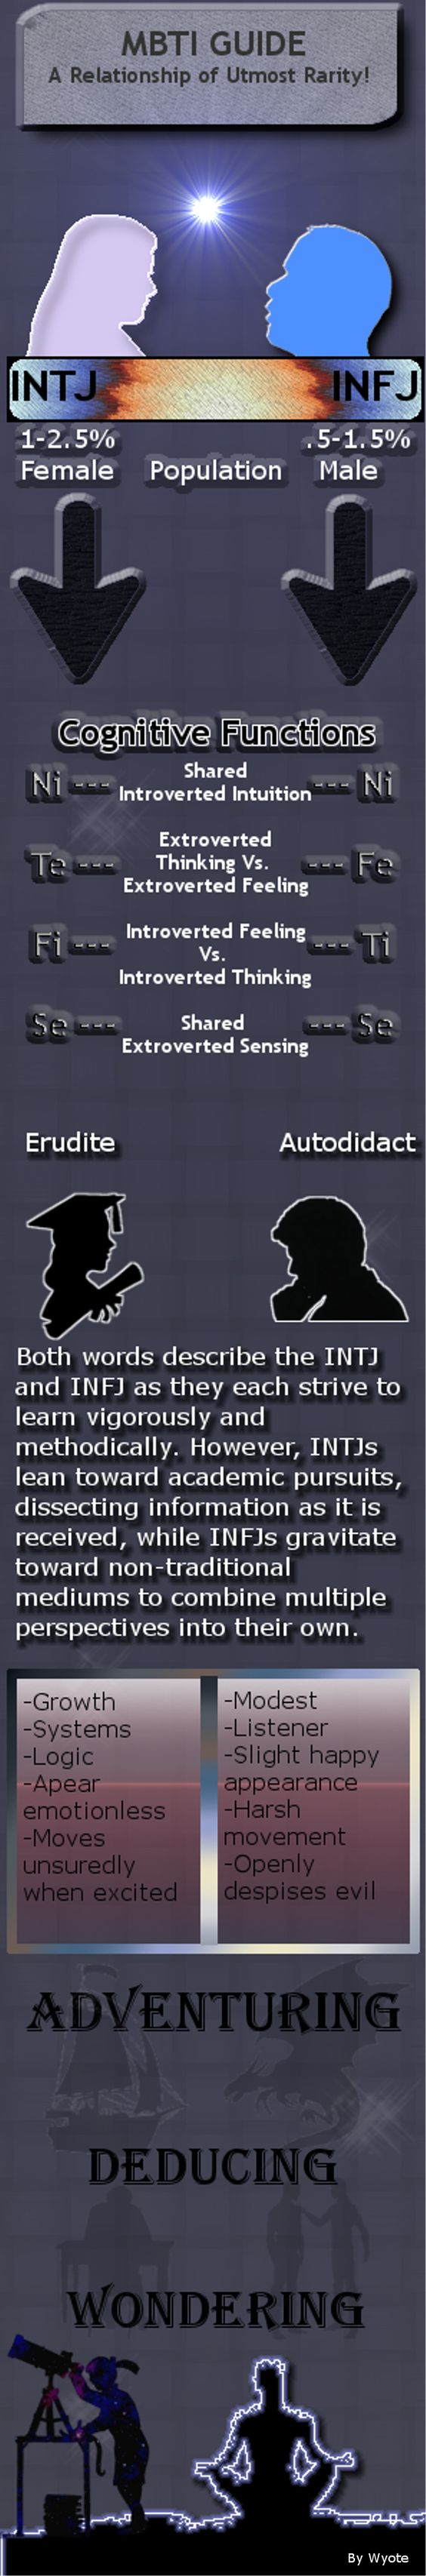 dating intj female